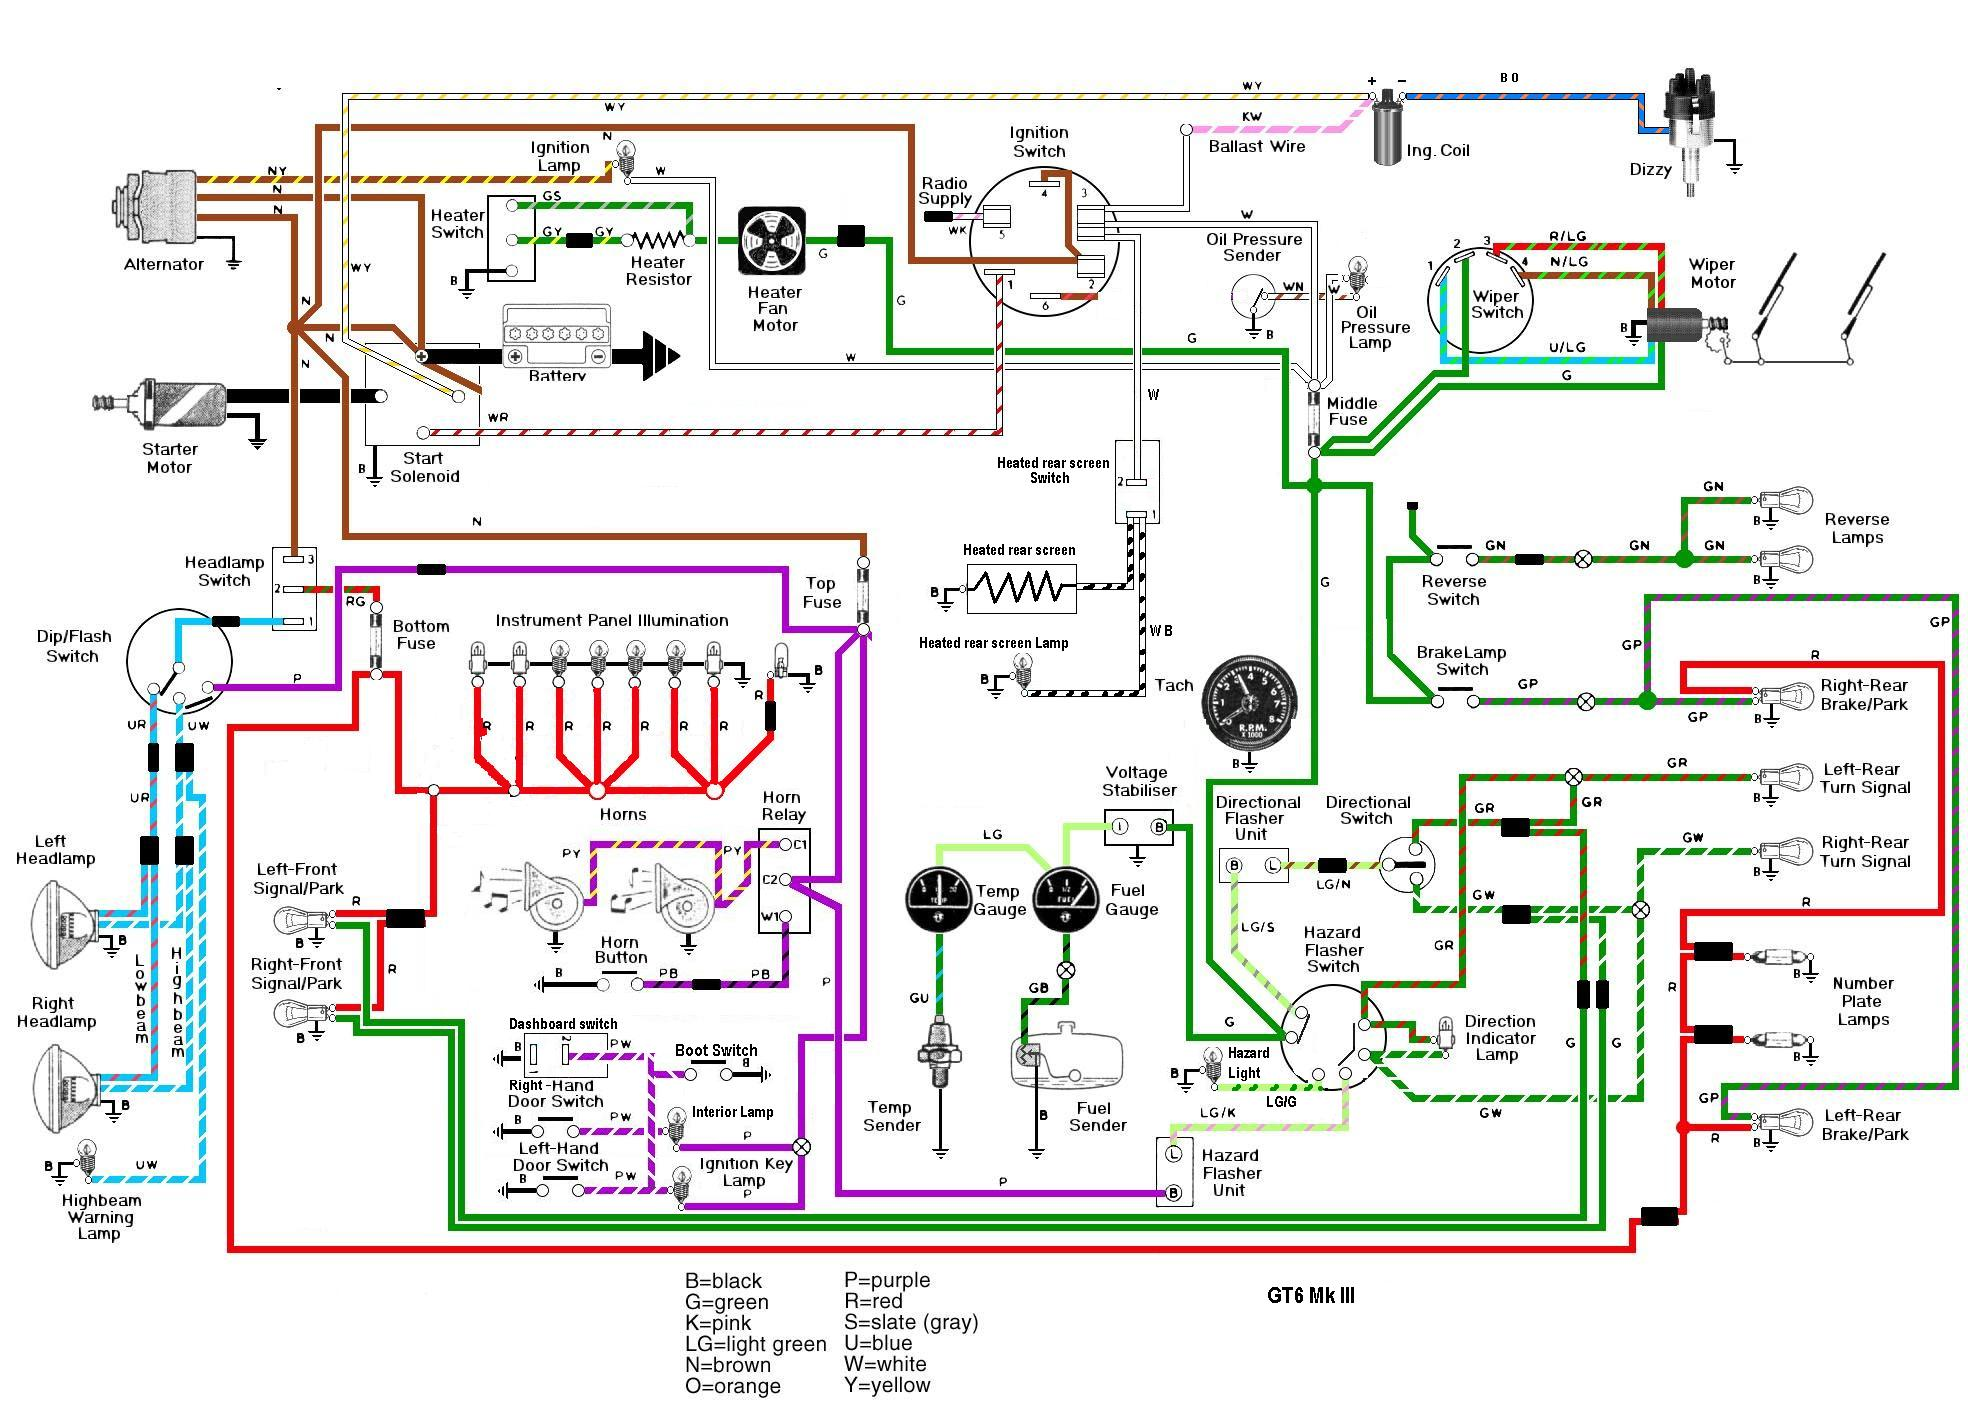 dodge alternator wiring diagram with Wiring on 1965 Mustang Wiring Diagrams in addition Gmc Sierra Truck Bed Diagram as well ments additionally Free Ford Wiring Diagrams further Wiring.